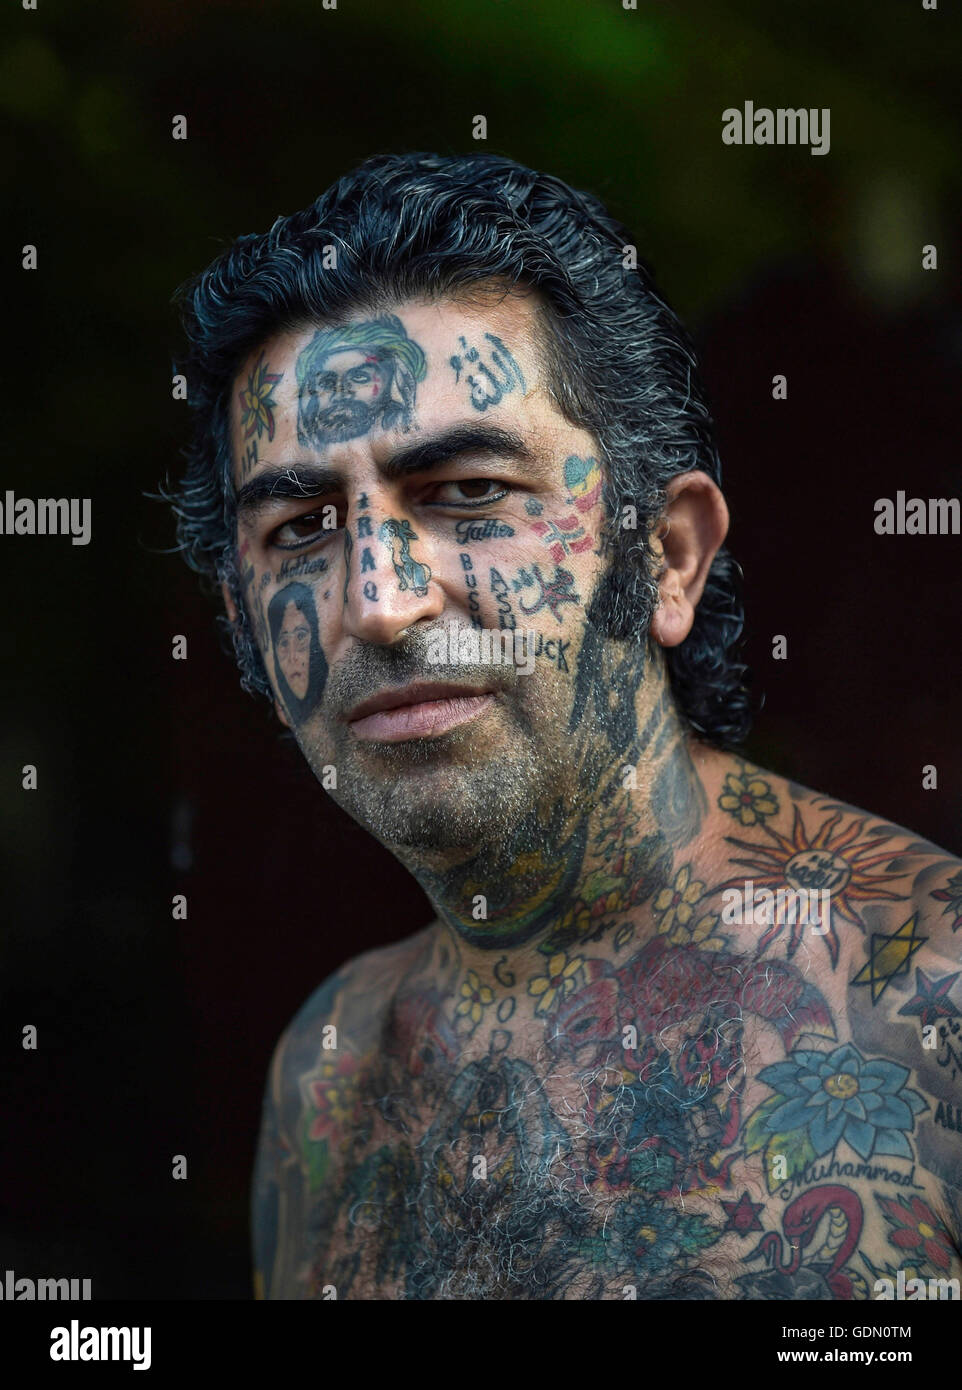 02f6e73d9fbdc Male Face Tattoos Stock Photos & Male Face Tattoos Stock Images - Alamy